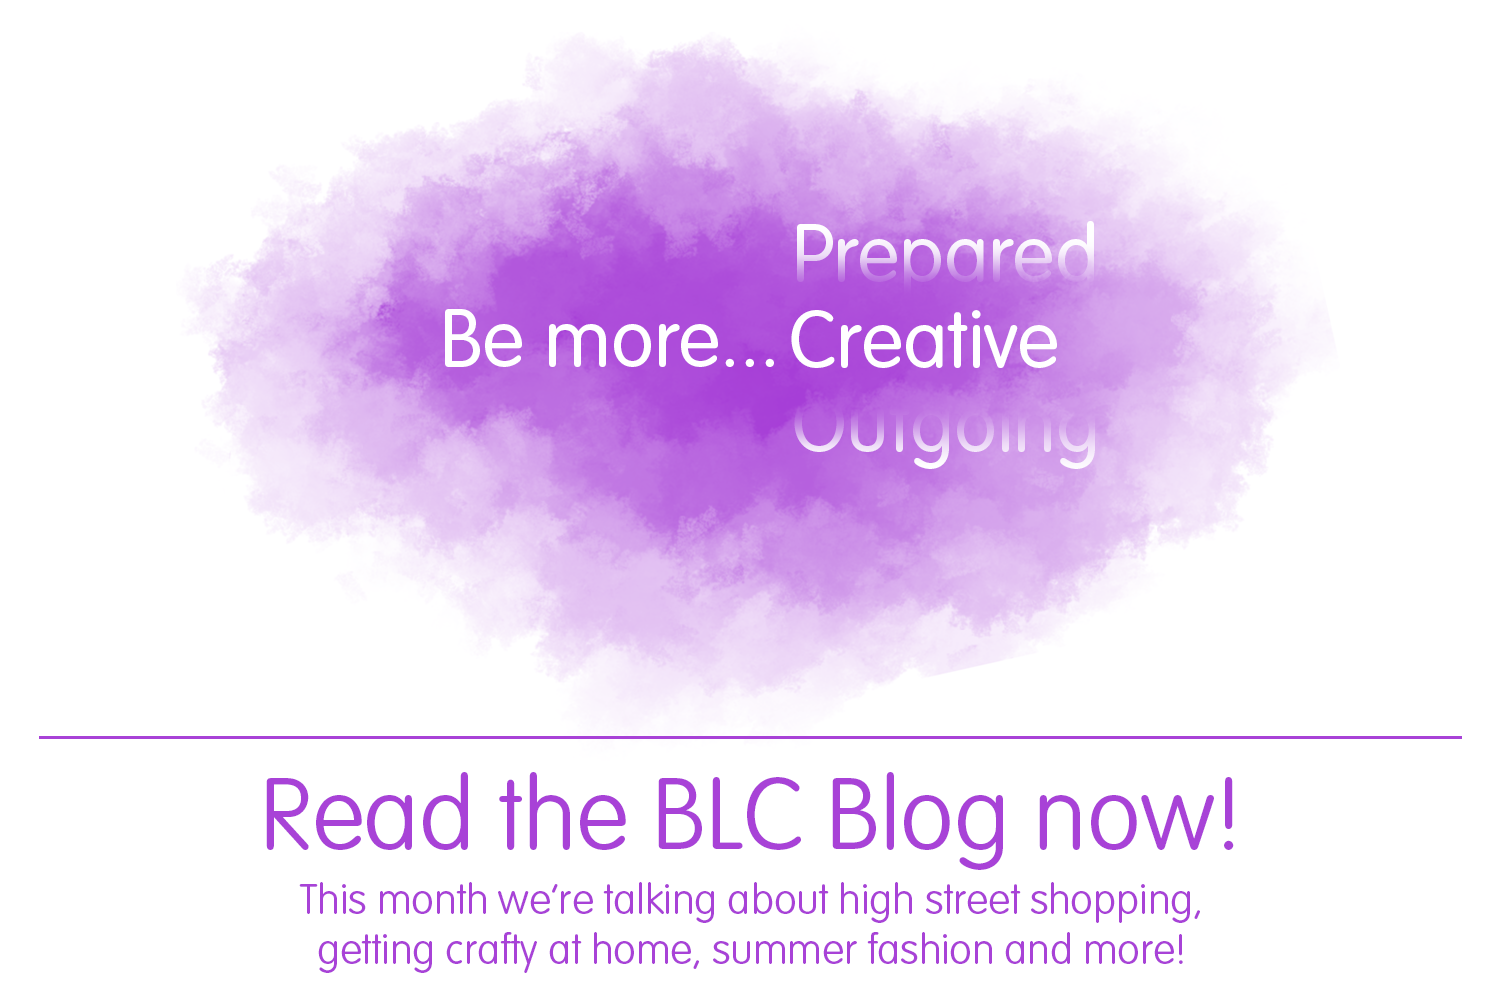 BLC Blog - Be more... Creative